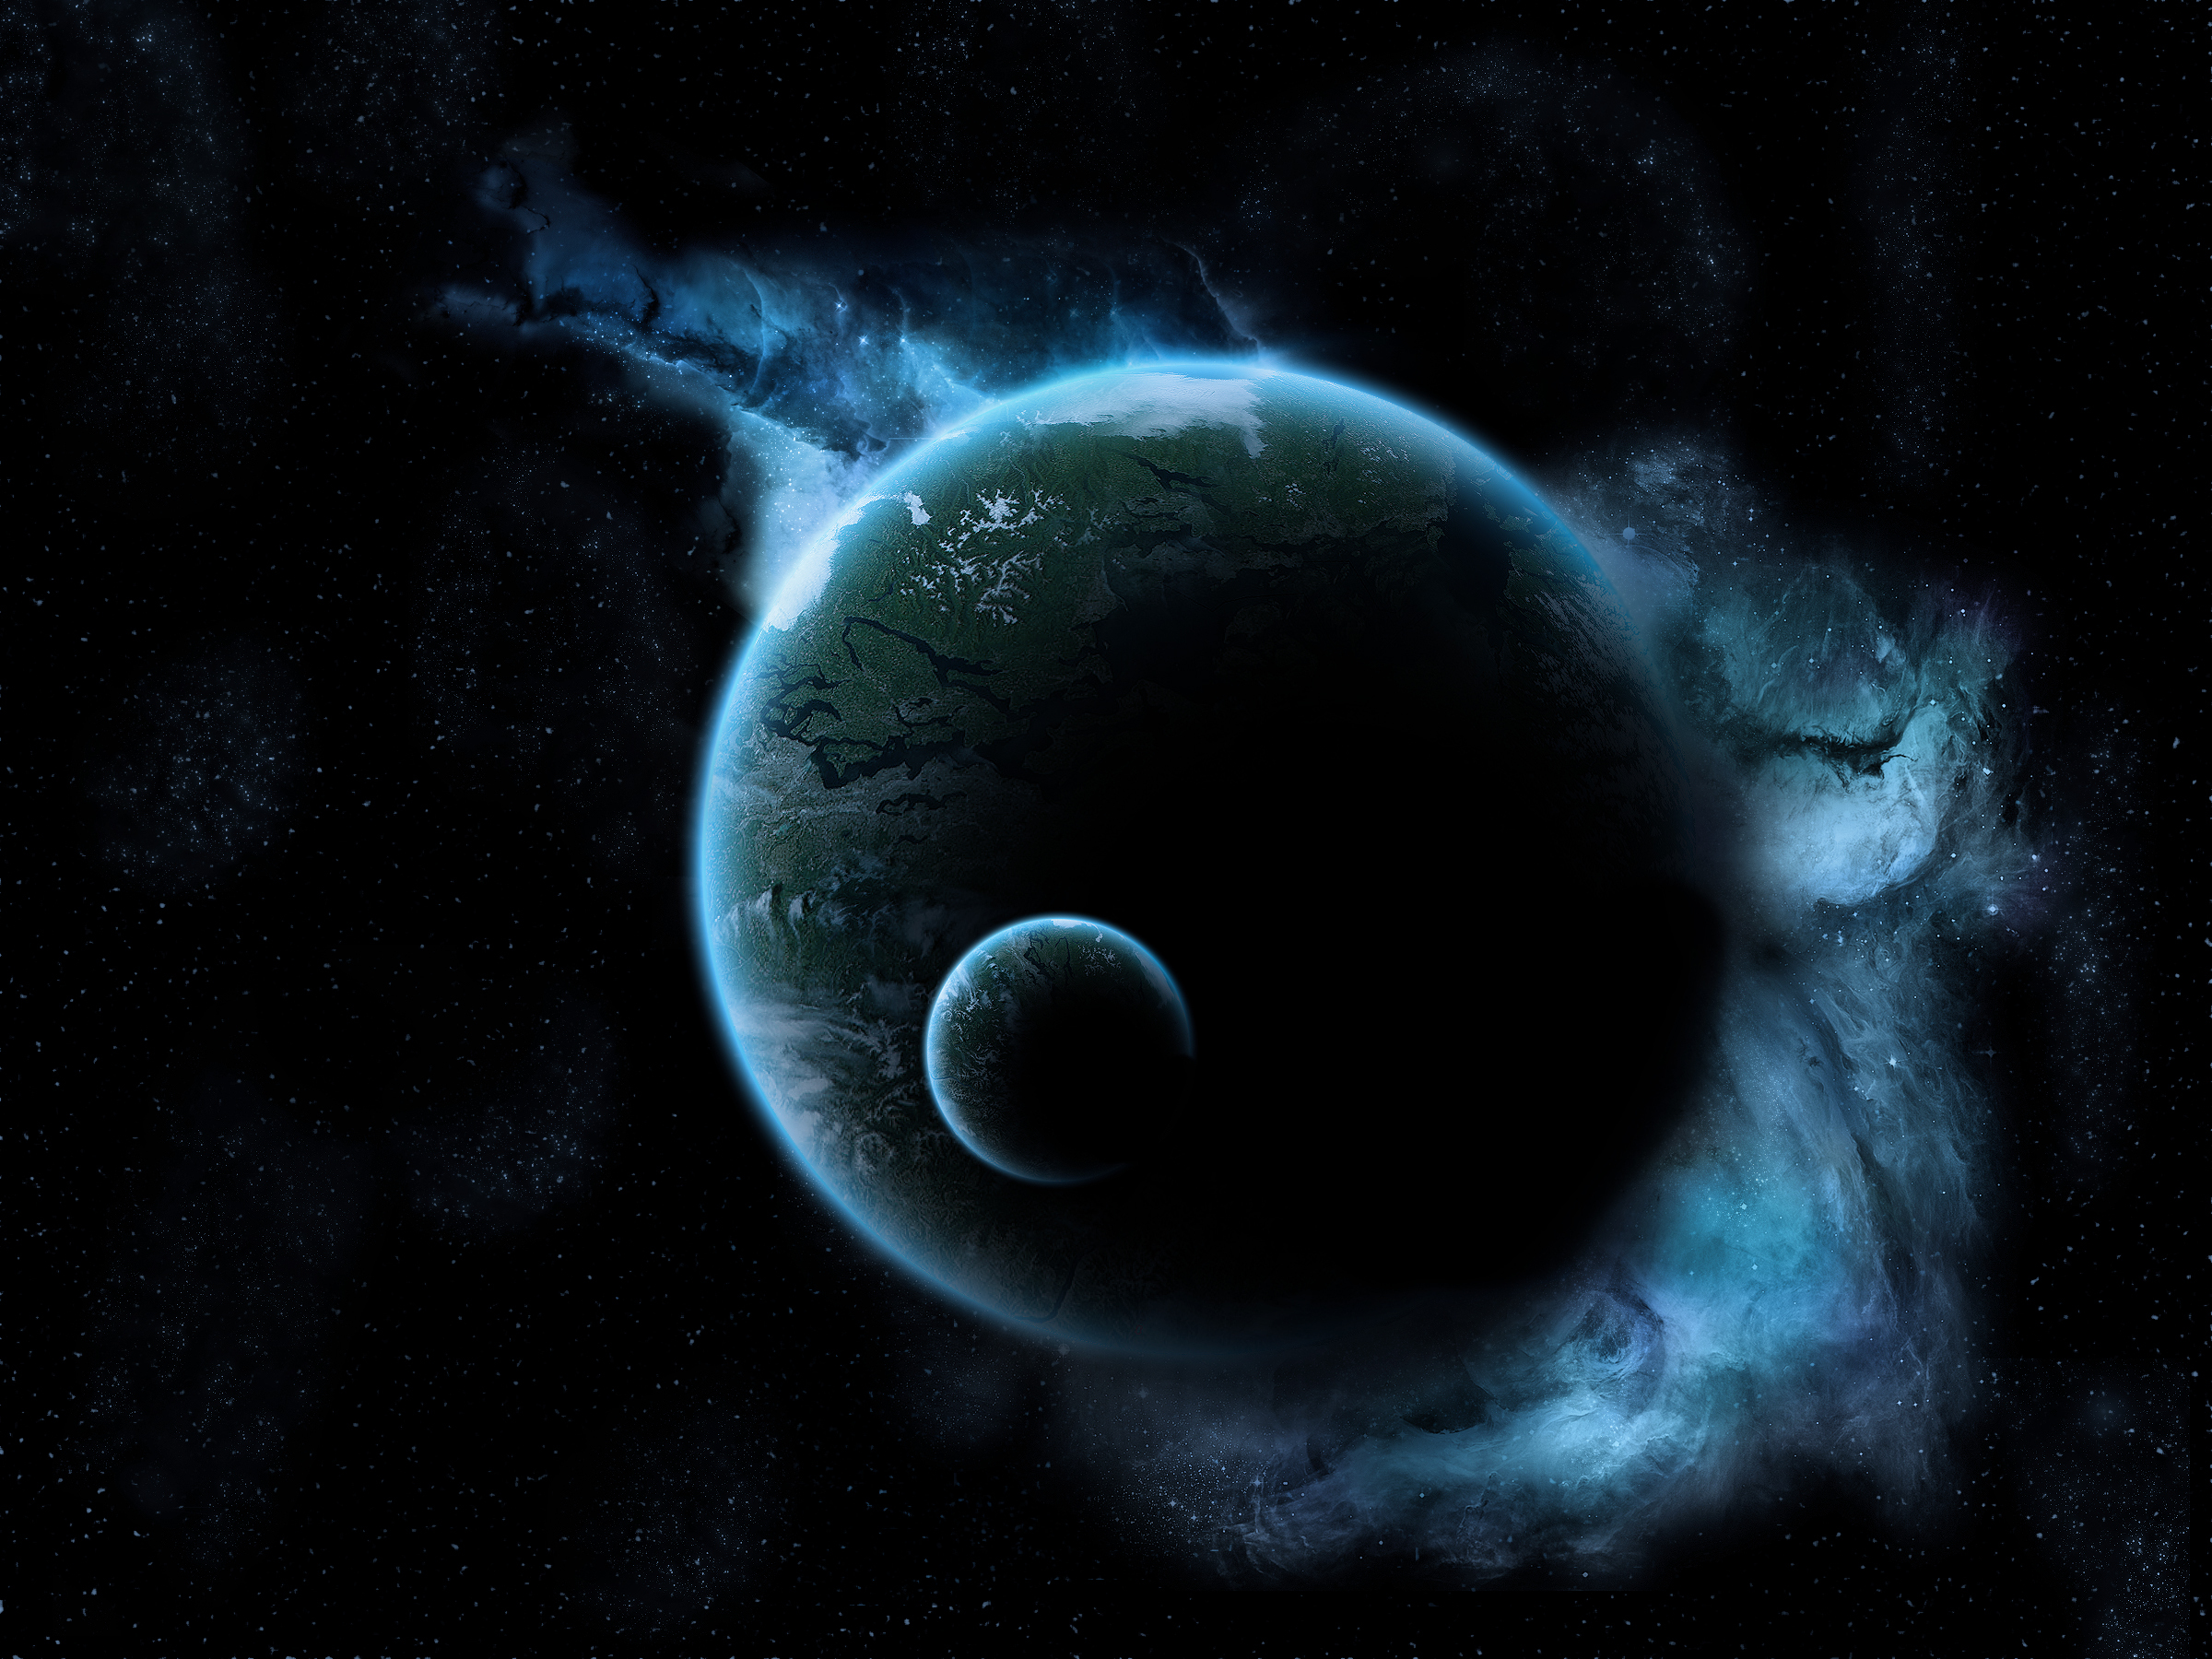 Space space planet earth moon light glow black dark star 2400x1800